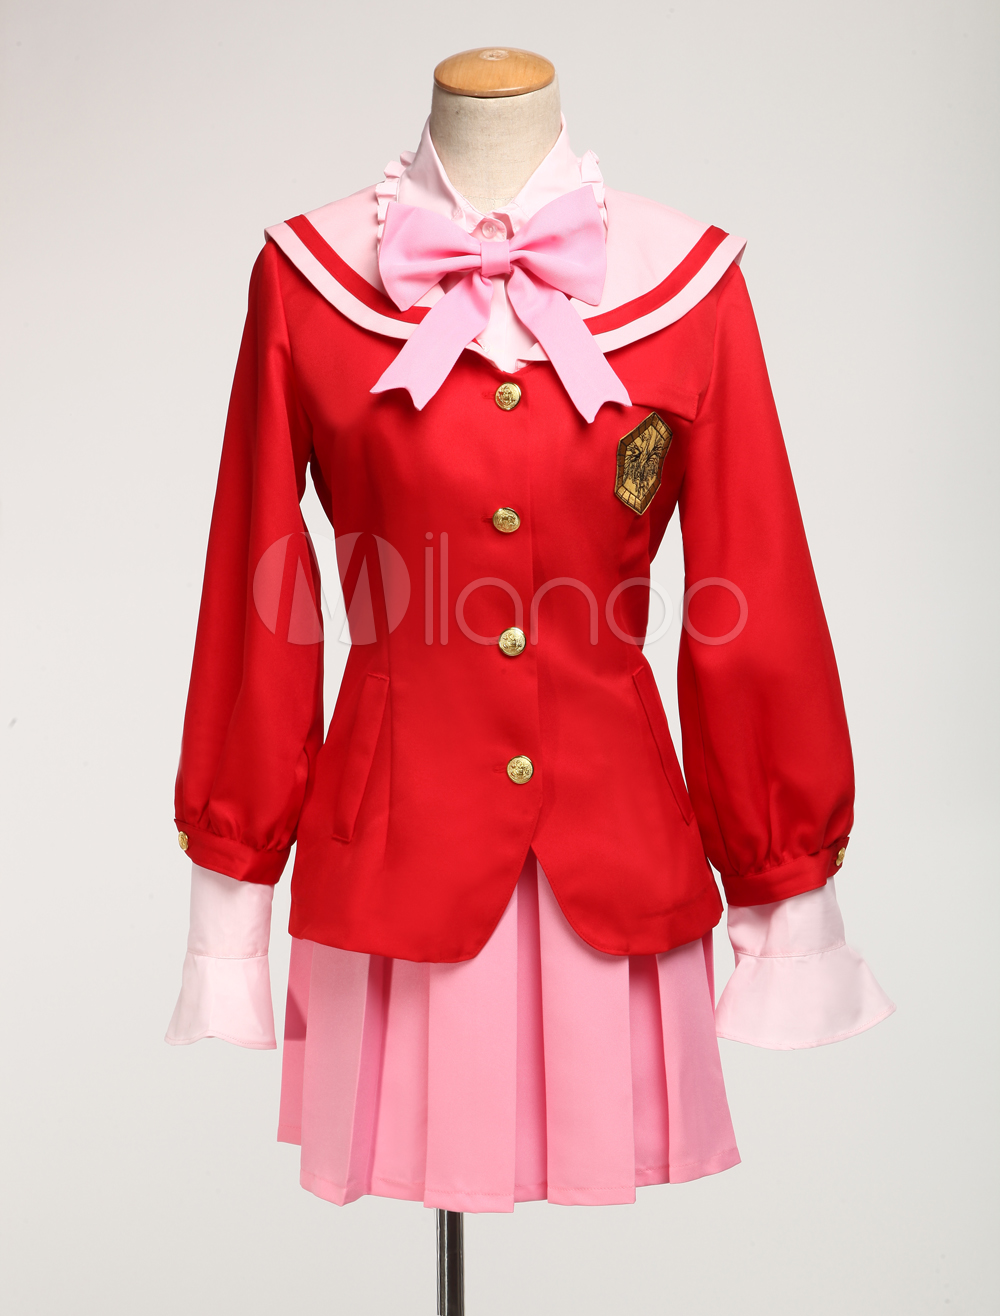 The World God Only Knows School Uniform Cosplay Costume  Halloween